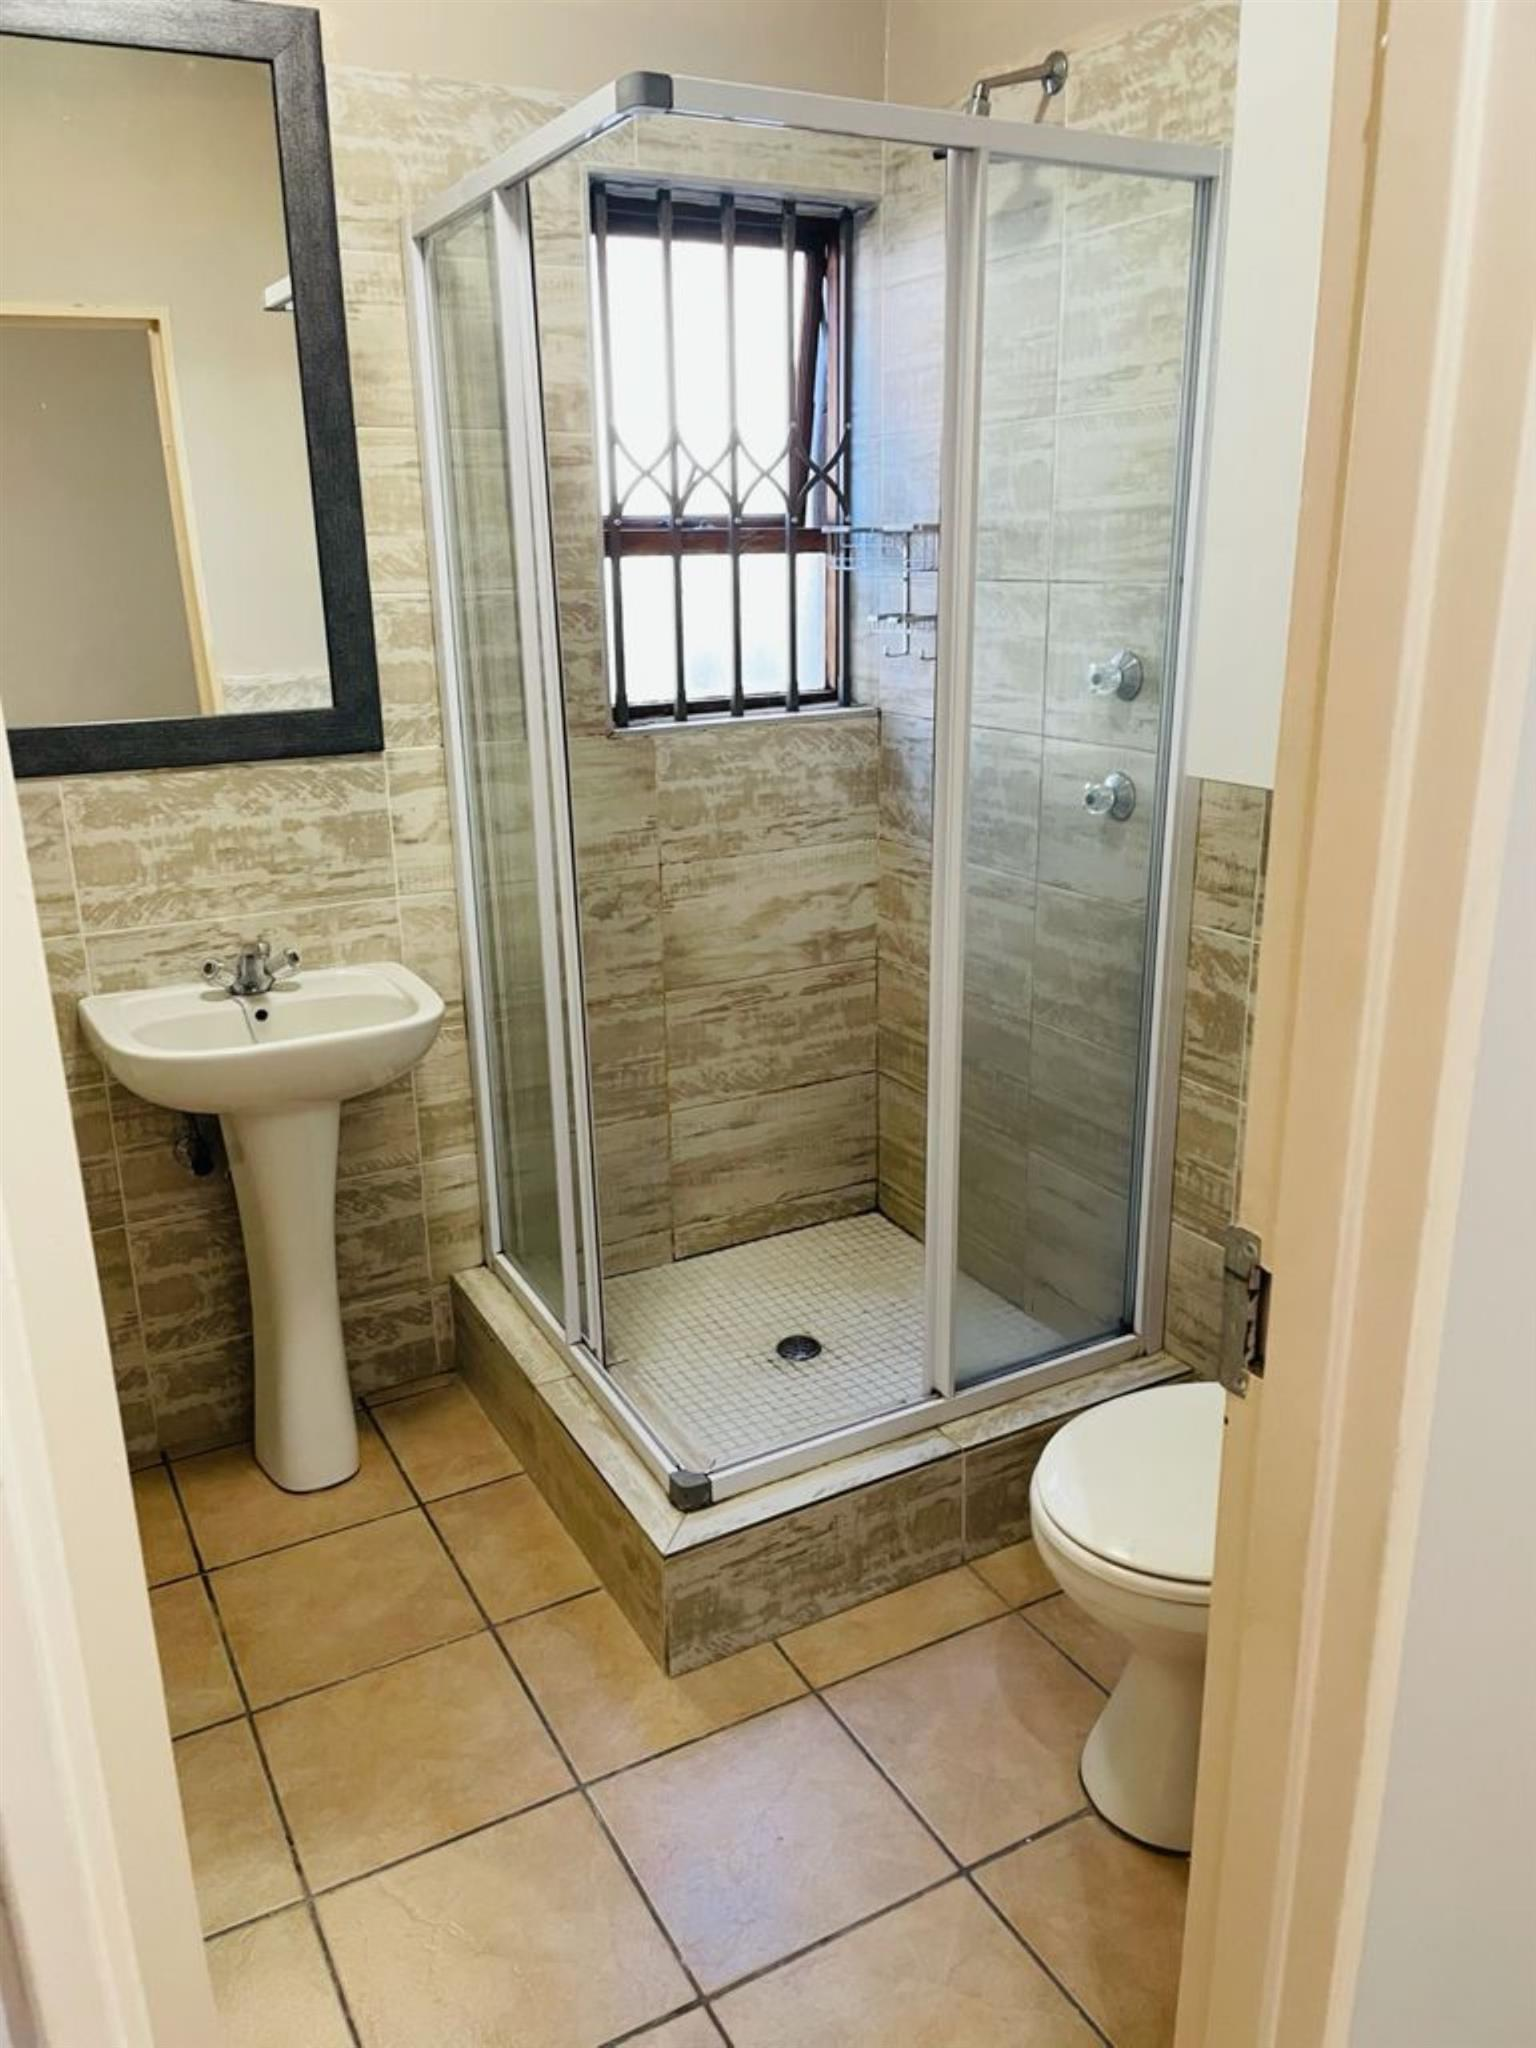 Apartment Rental Monthly in Waverley